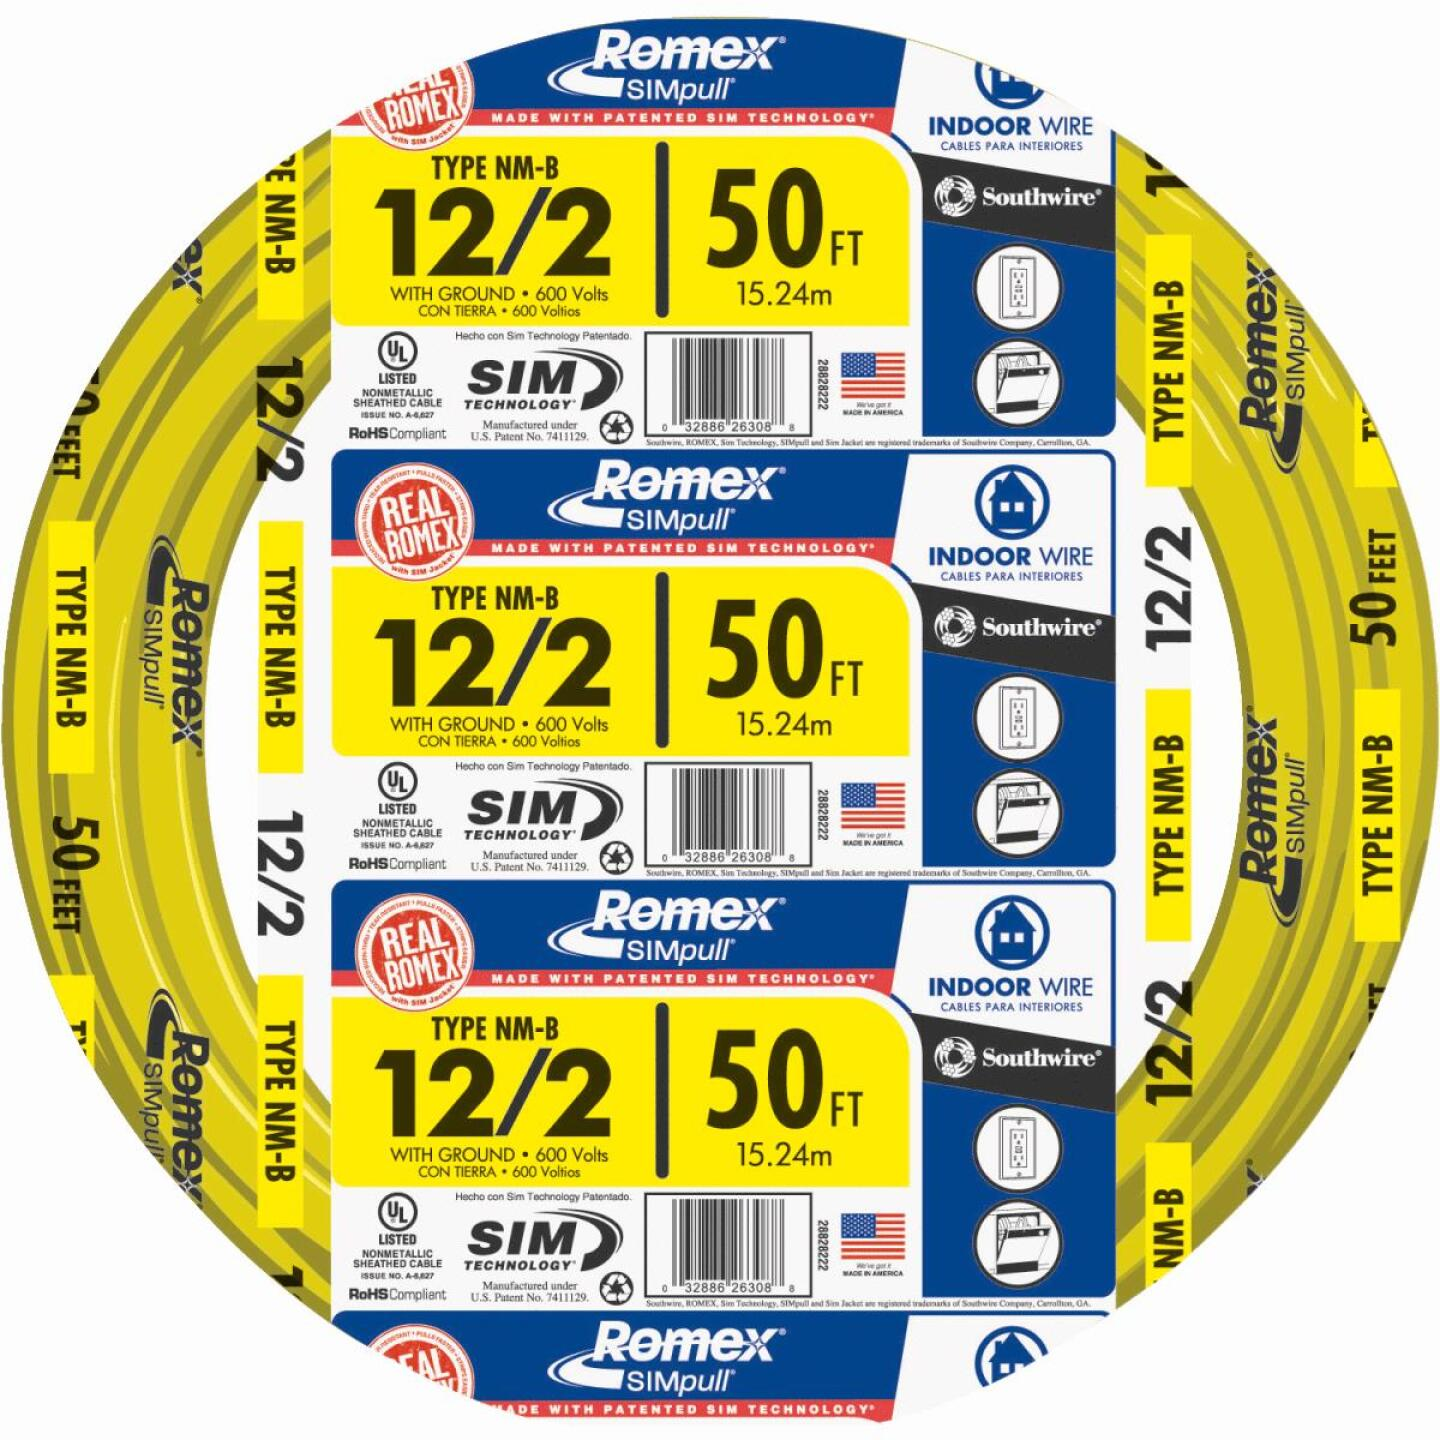 Romex 50 Ft. 12-2 Solid Yellow NMW/G Wire Image 1